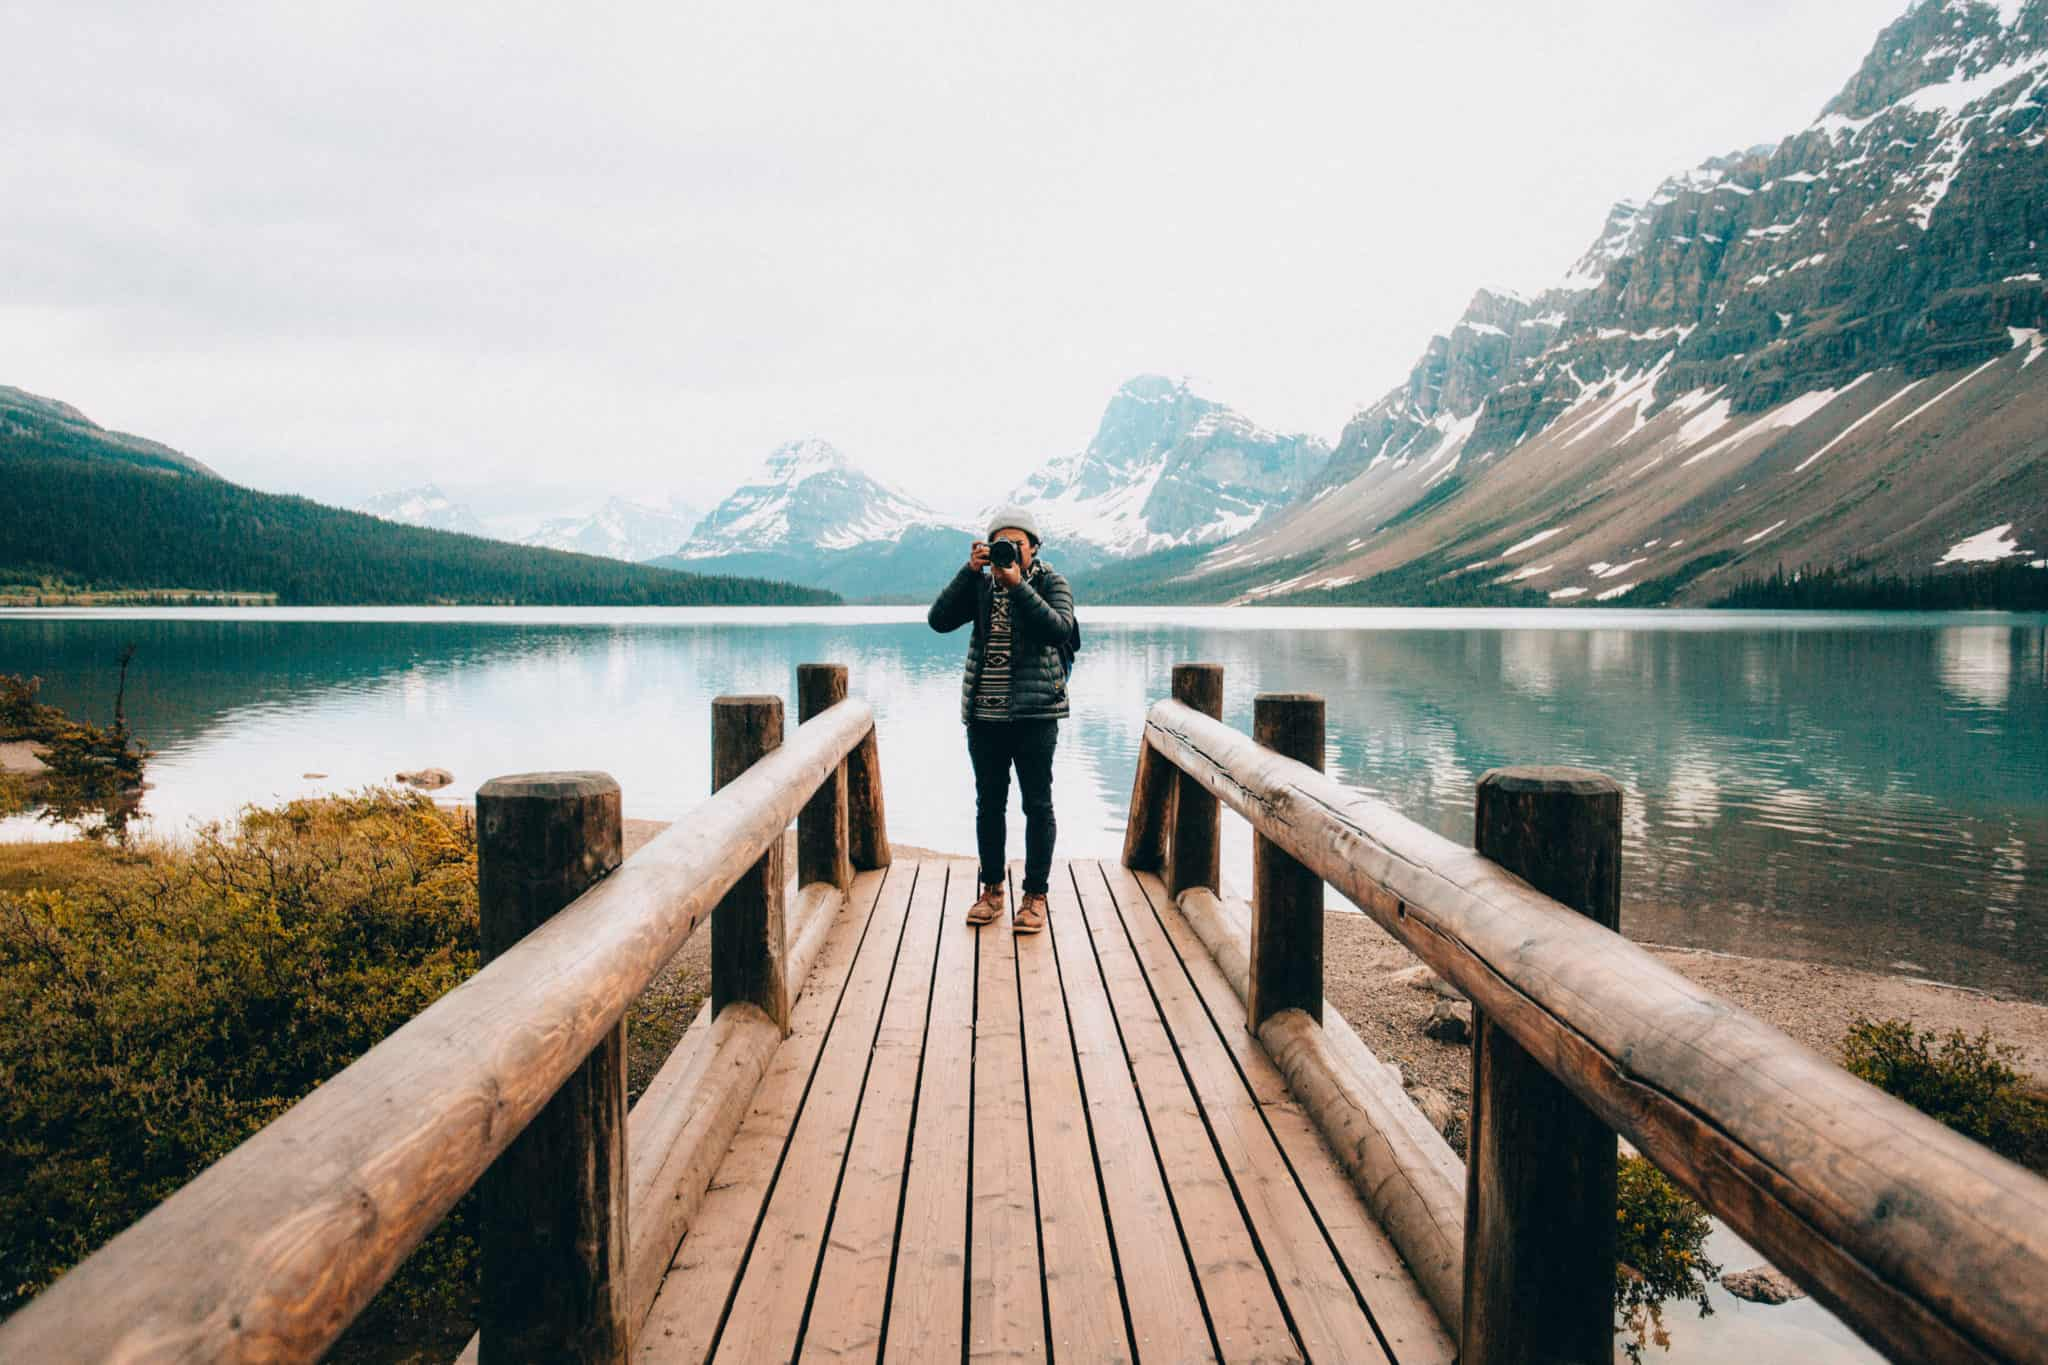 Berty Mandagie standing on Bow Lake wooden bridge, Banff National Park, Alberta Canada